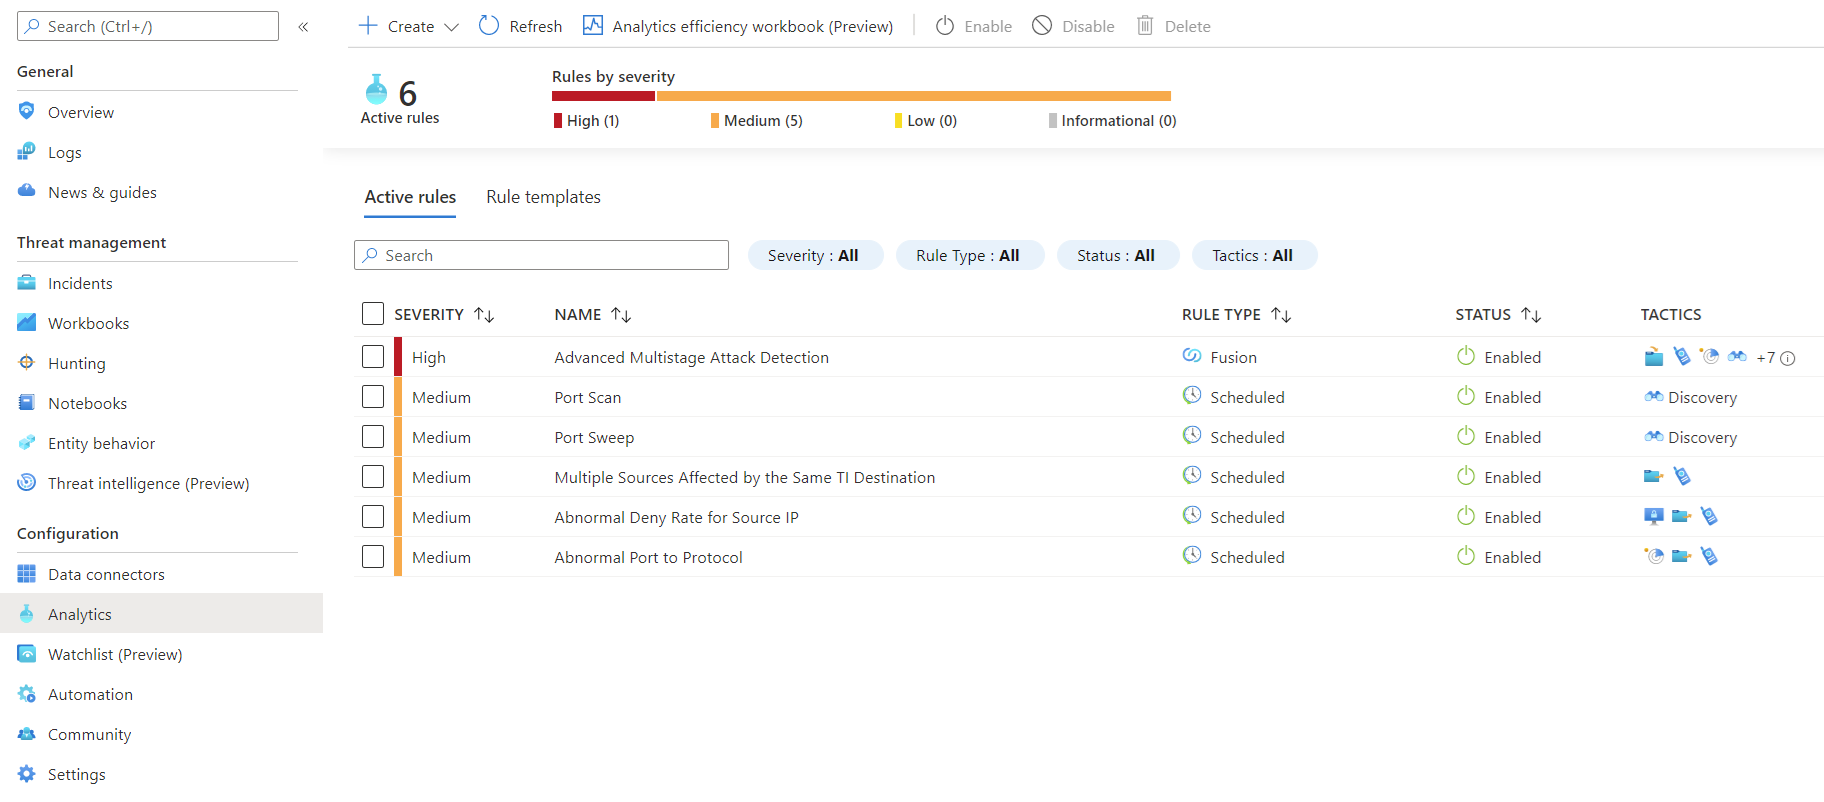 The Azure Firewall solution detections as they appear in the Azure Sentinel detection section after installing the solution.